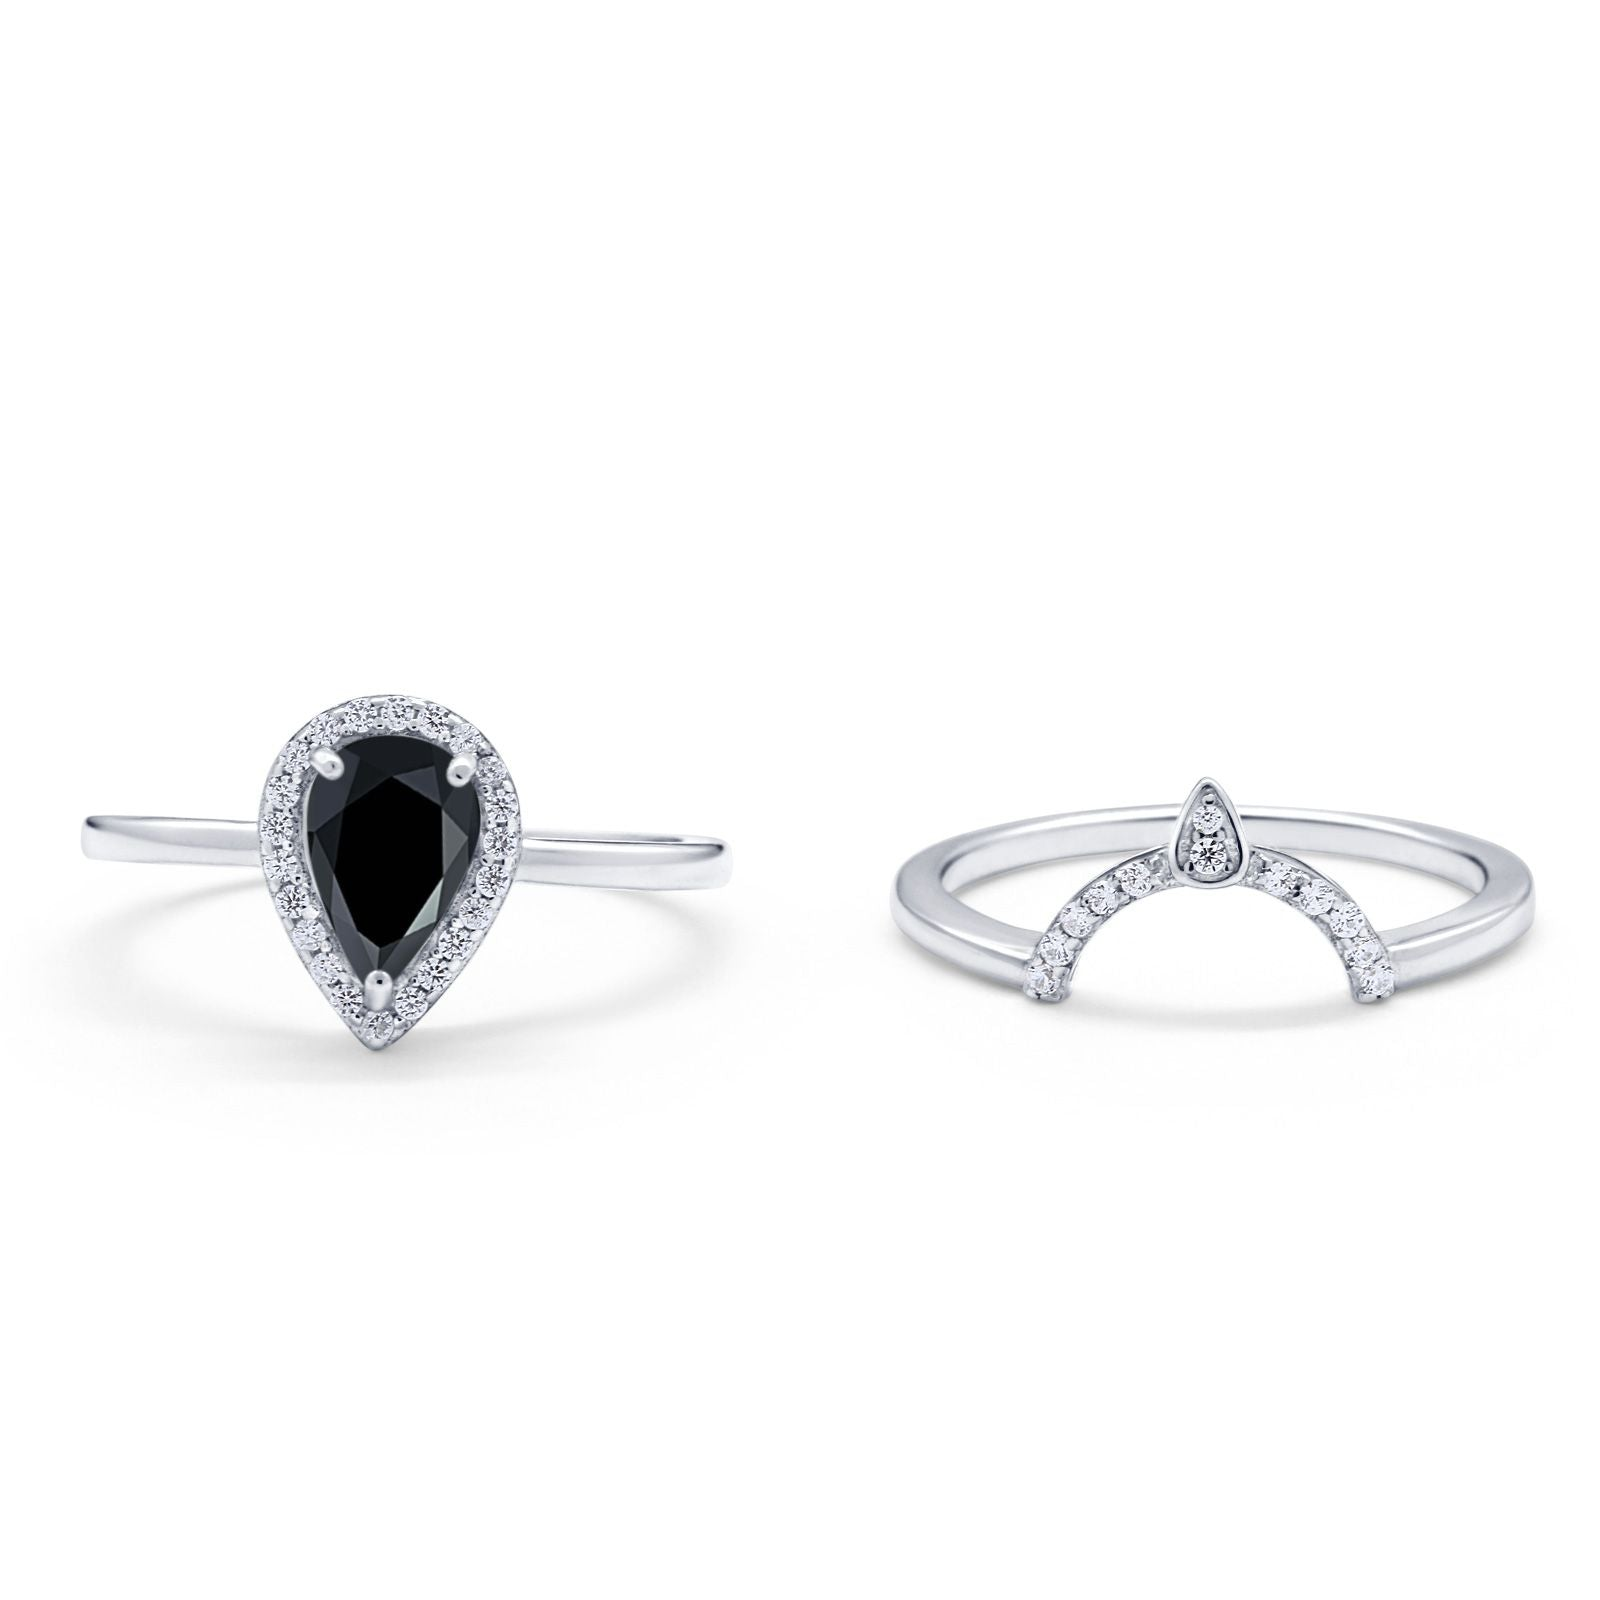 Two Piece Teardrop Engagement Ring Simulated Cubic Zirconia 925 Sterling Silver